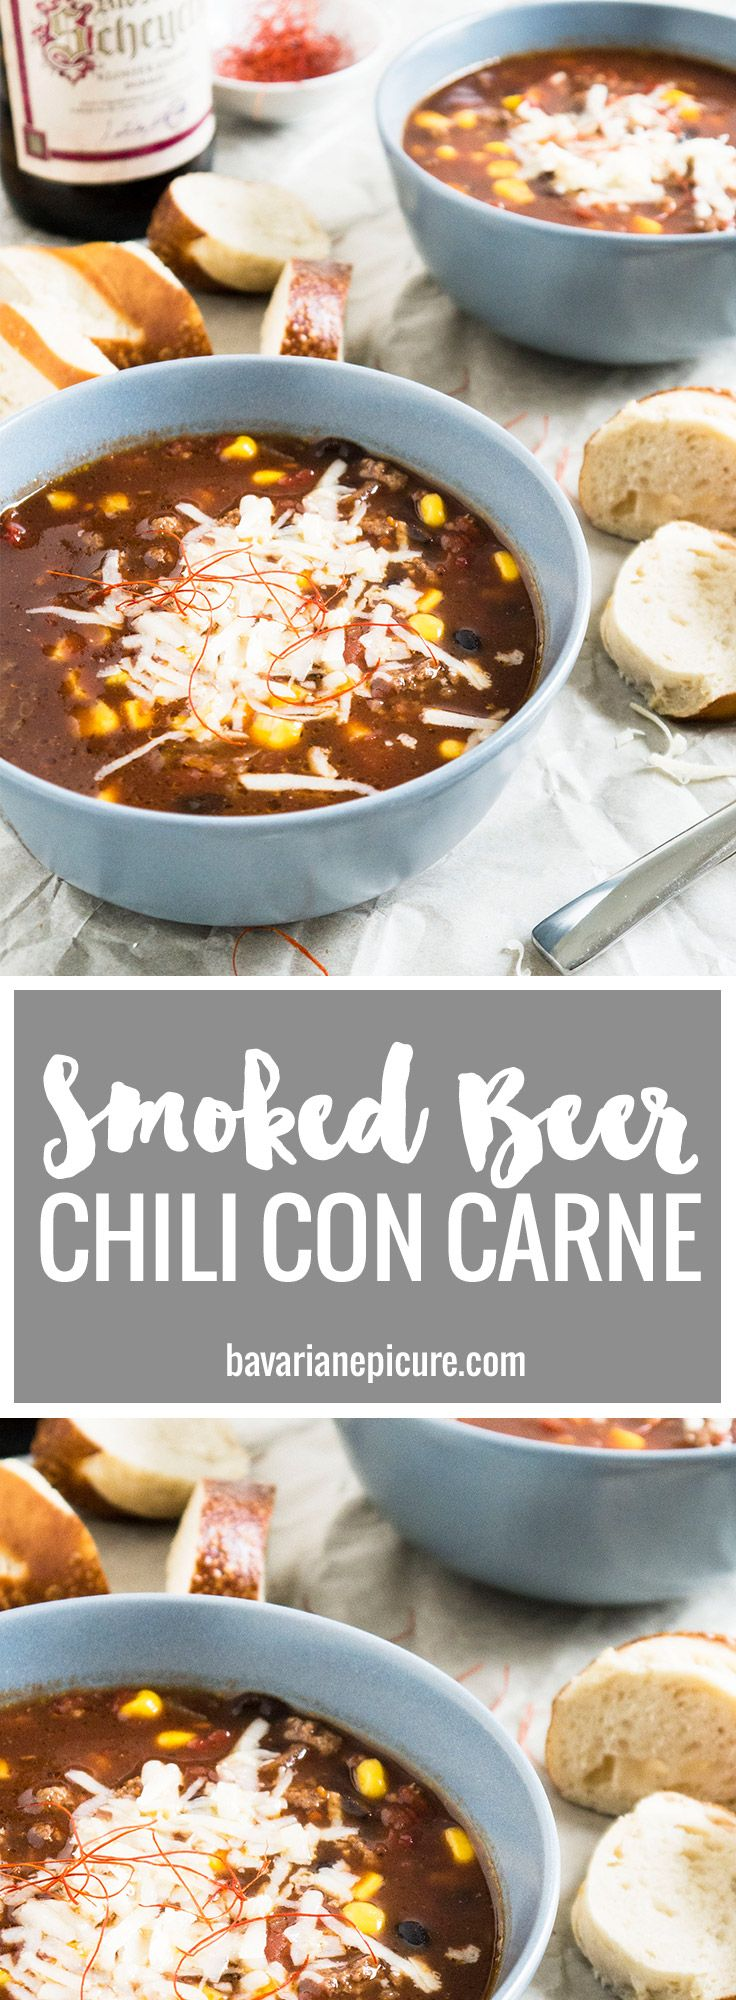 This Smoked Beer Chili con Carne is great to feed a crowd!